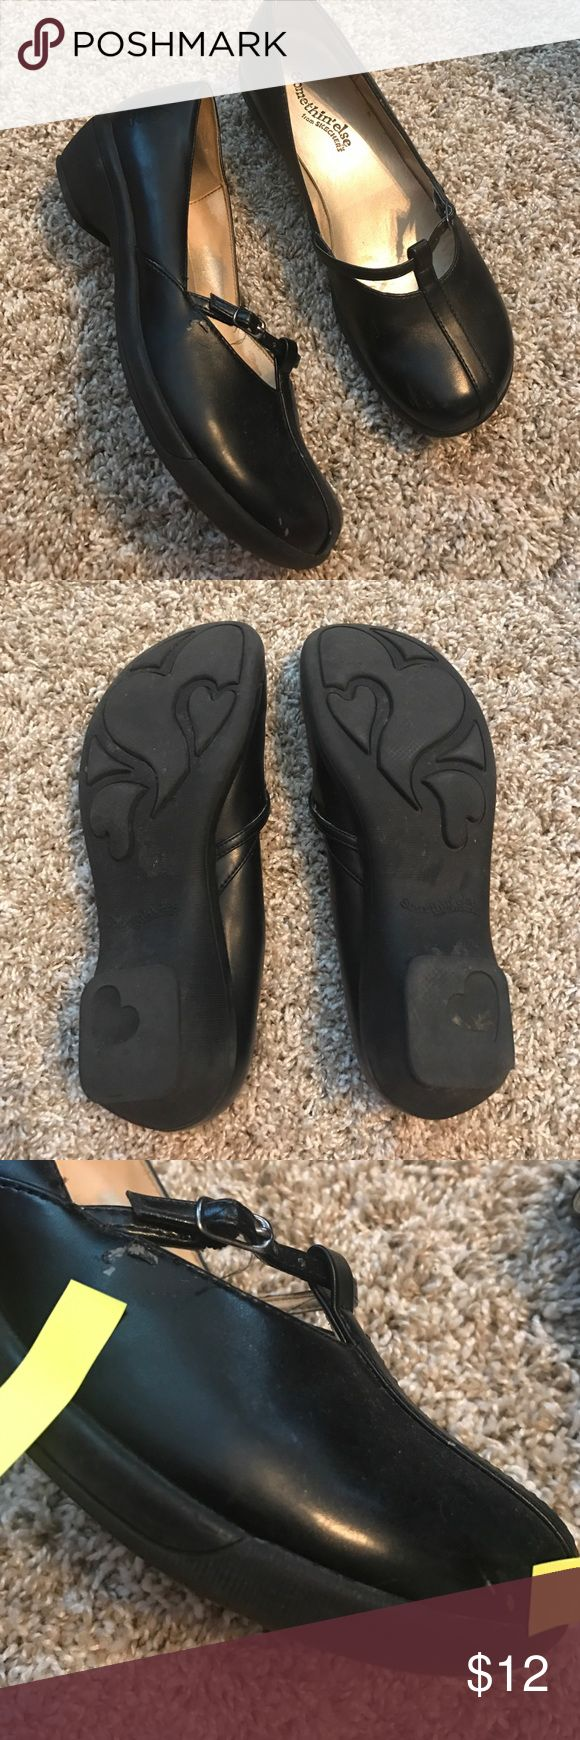 Skechers Black Work Shoes wedge pre-loved Pre-loved Black Skechers with a small wedge.  Size is 7.5.  Please see ALL 8 pics for details and wear.  Shoes are peeling in spots.  Rubber soles.  Make an offer and bundle!!! Skechers Shoes